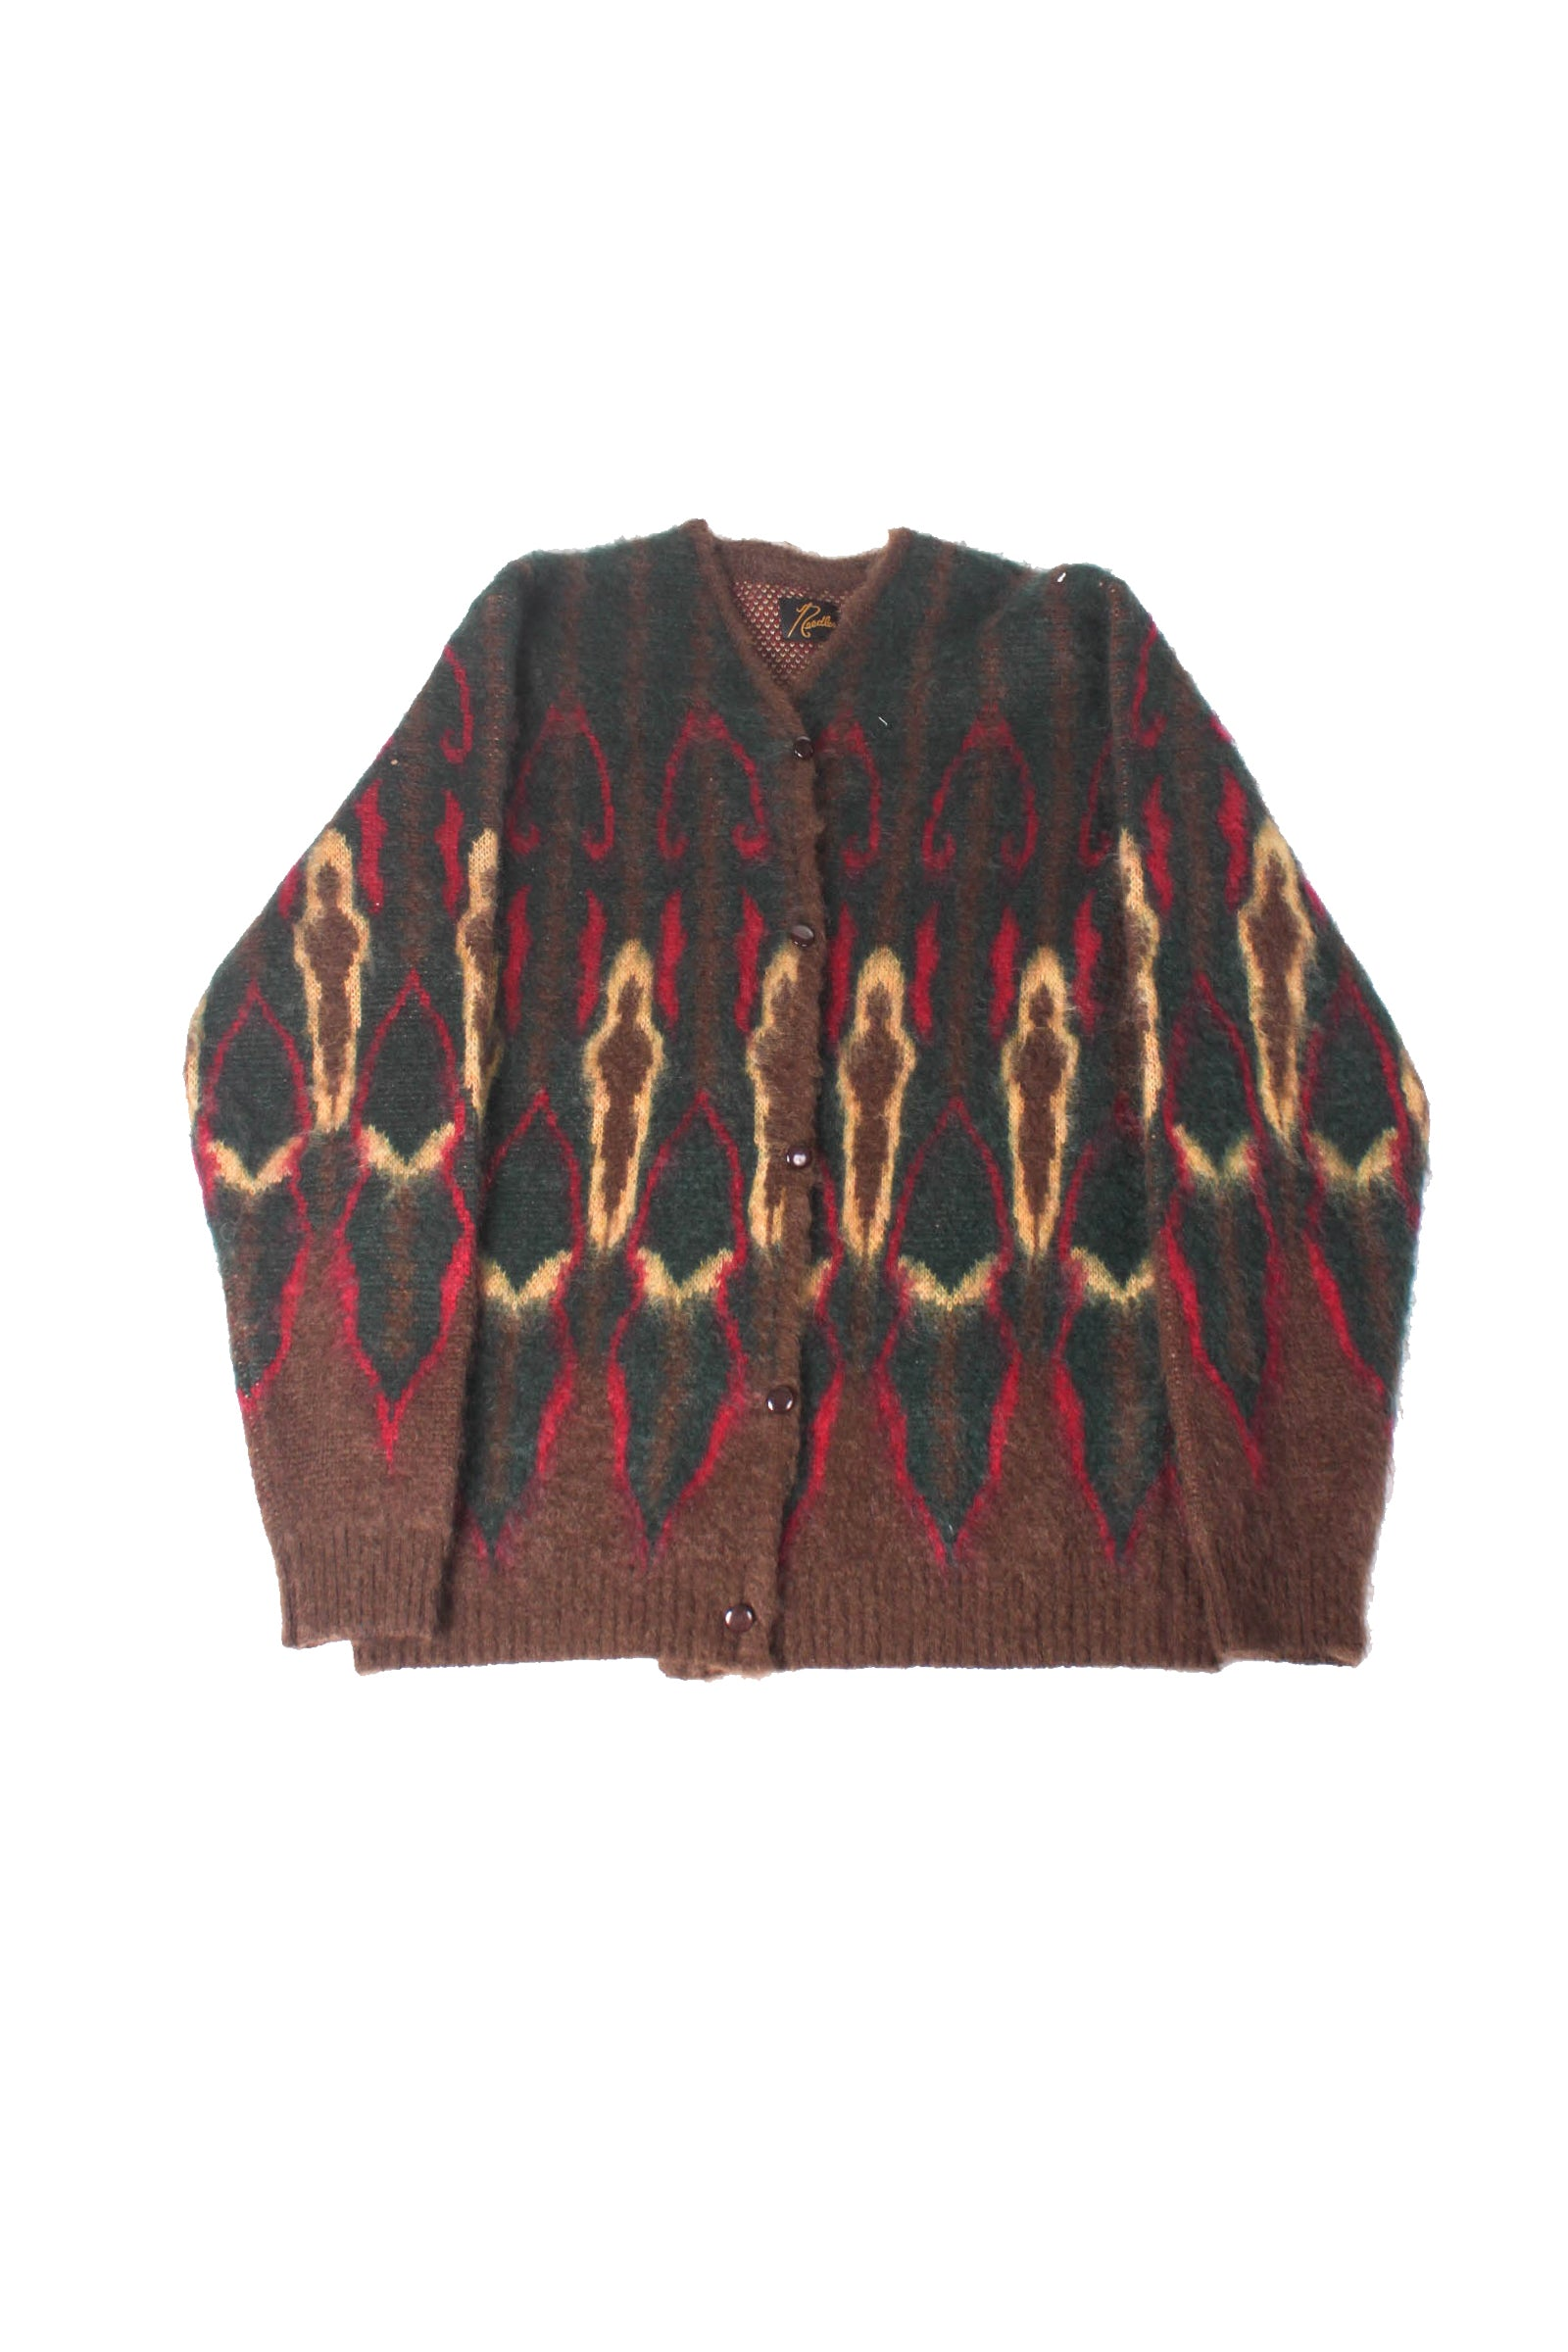 Needles Sweater